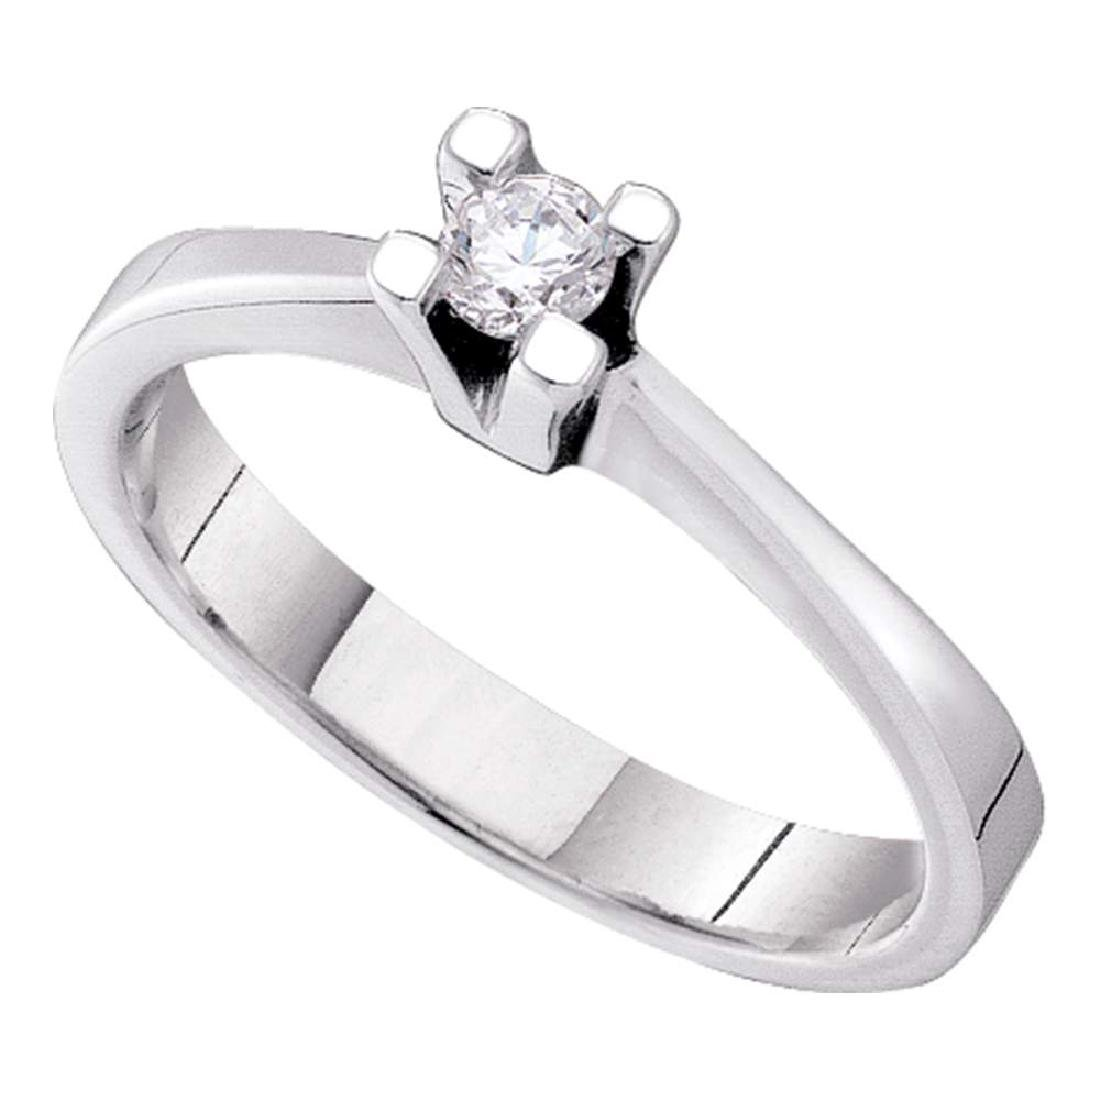 0.10 CTW Diamond Solitaire Bridal Engagement Ring 14KT